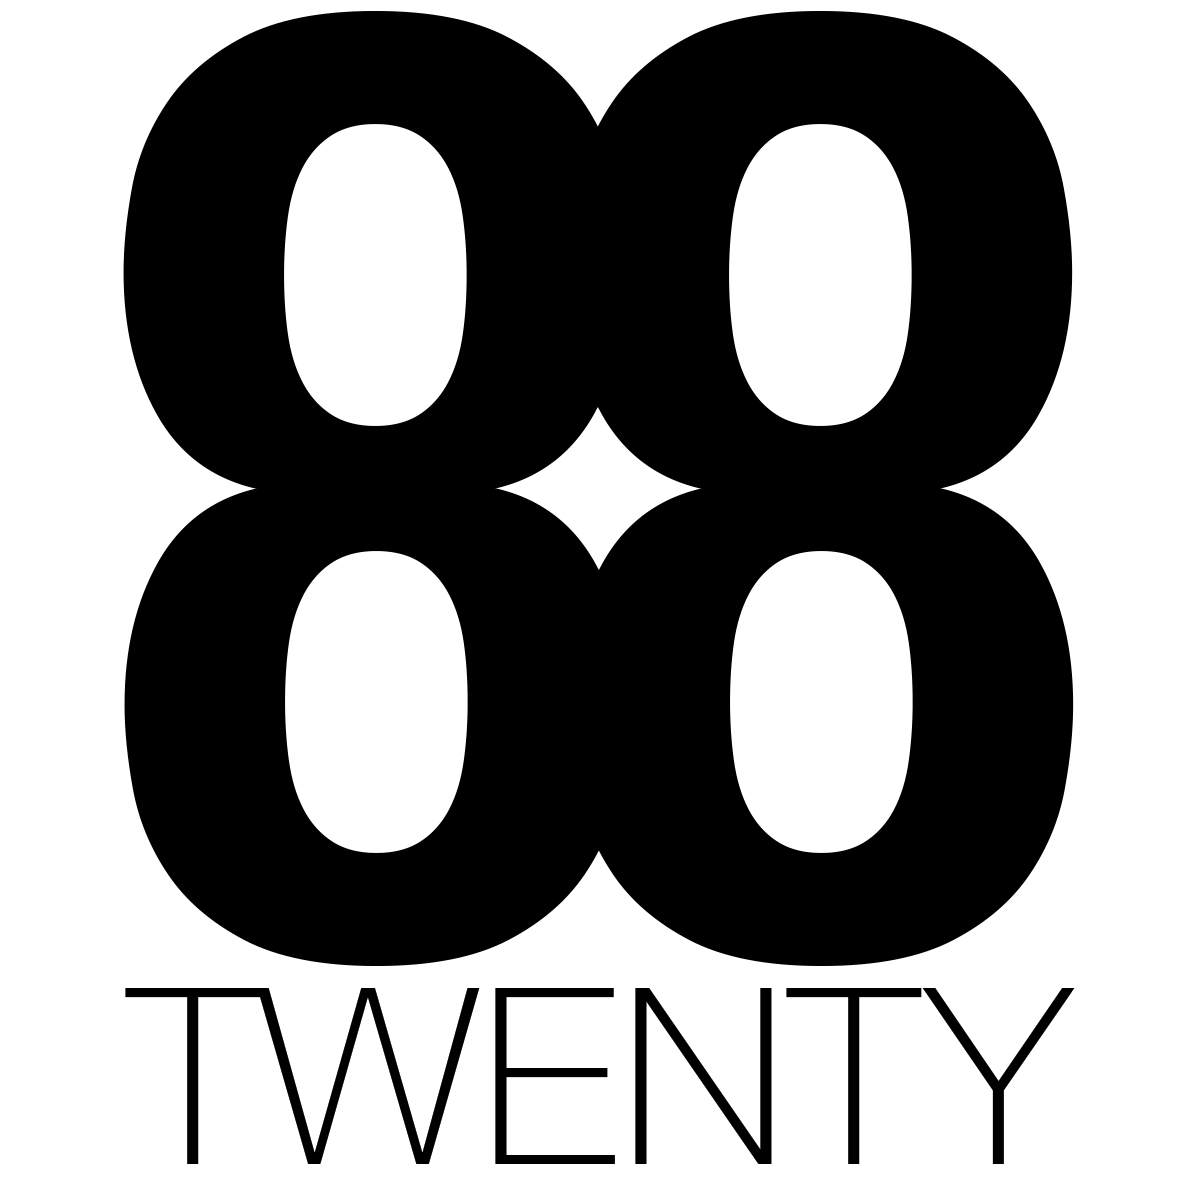 88Twenty Group